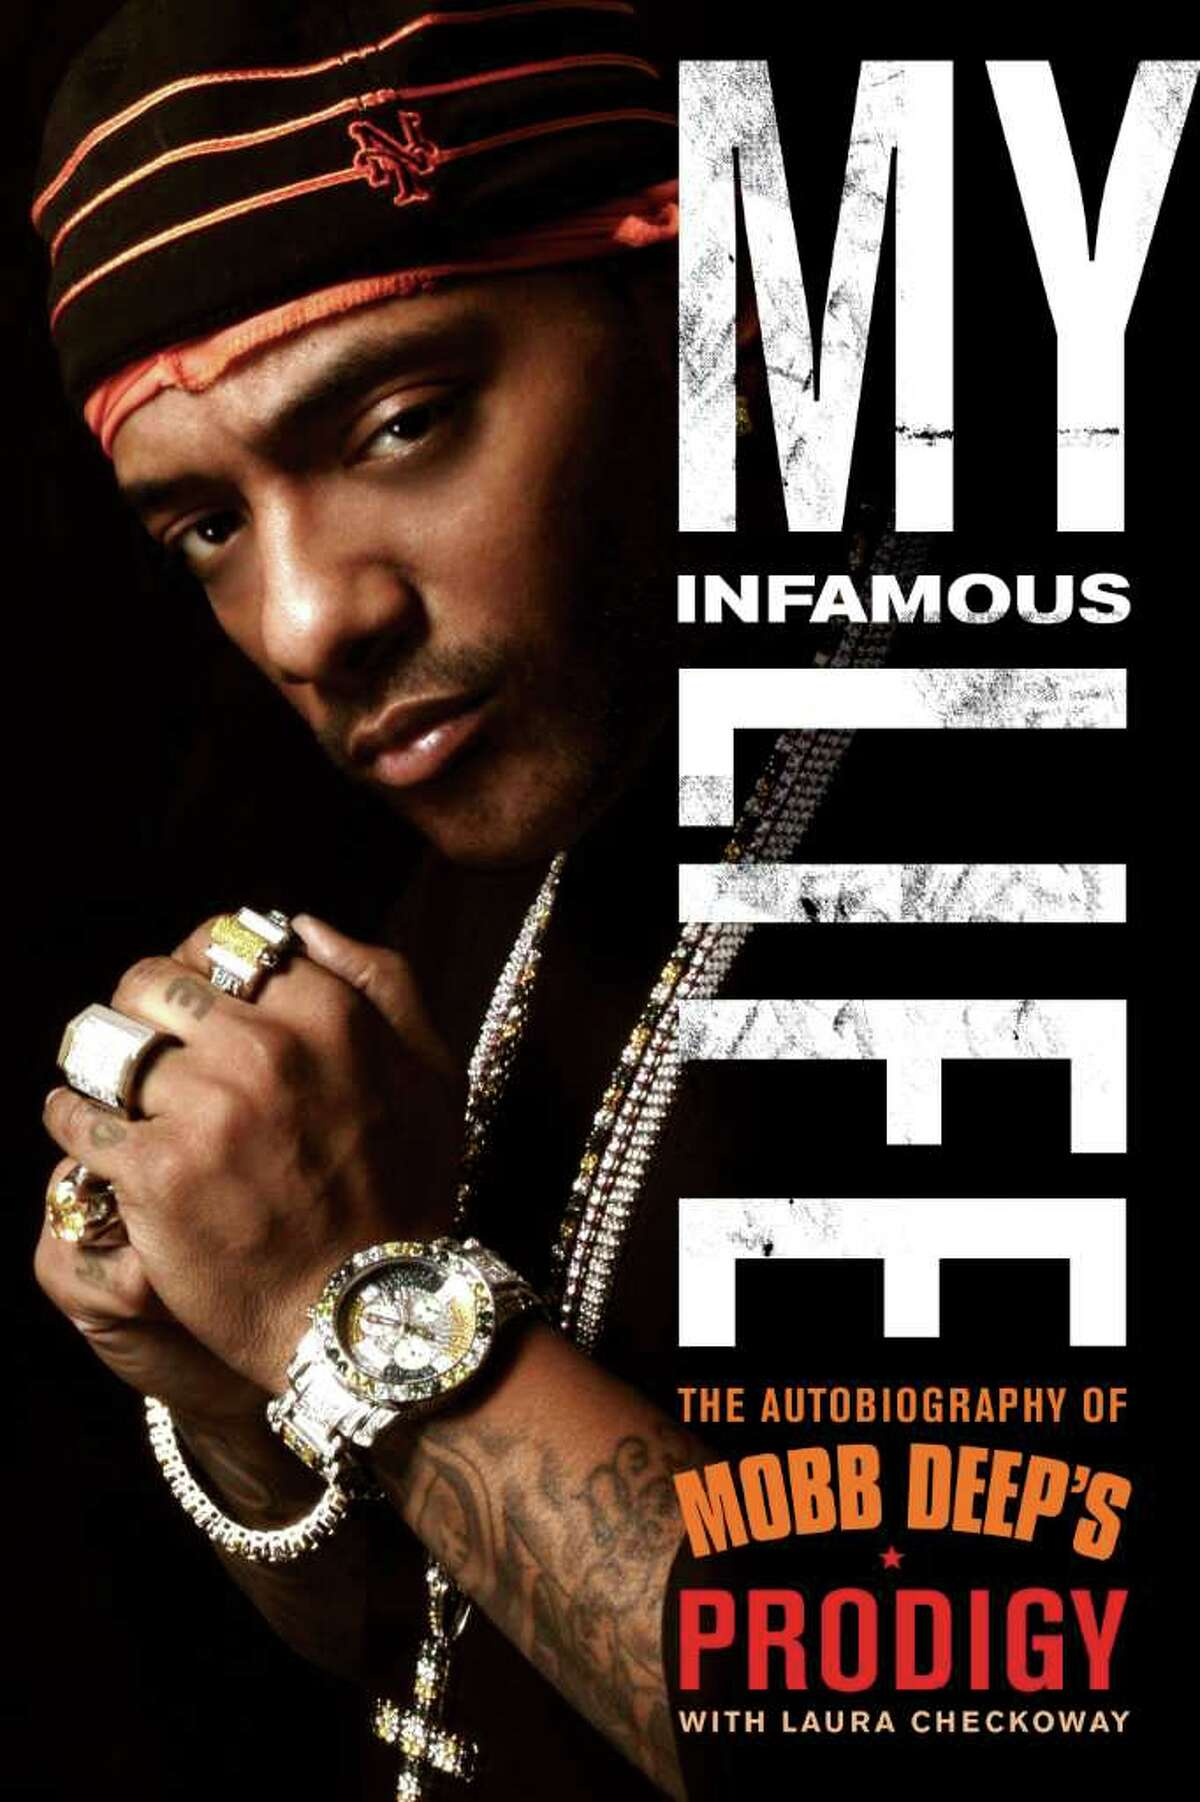 """Albert """"Prodigy"""" Johnson, one half of the legendary Queens, N.Y. rap duo Mobb Deep, has released his autobiography, """"My Infamous Life: The Autobiography of Mobb Deep's Prodigy."""""""